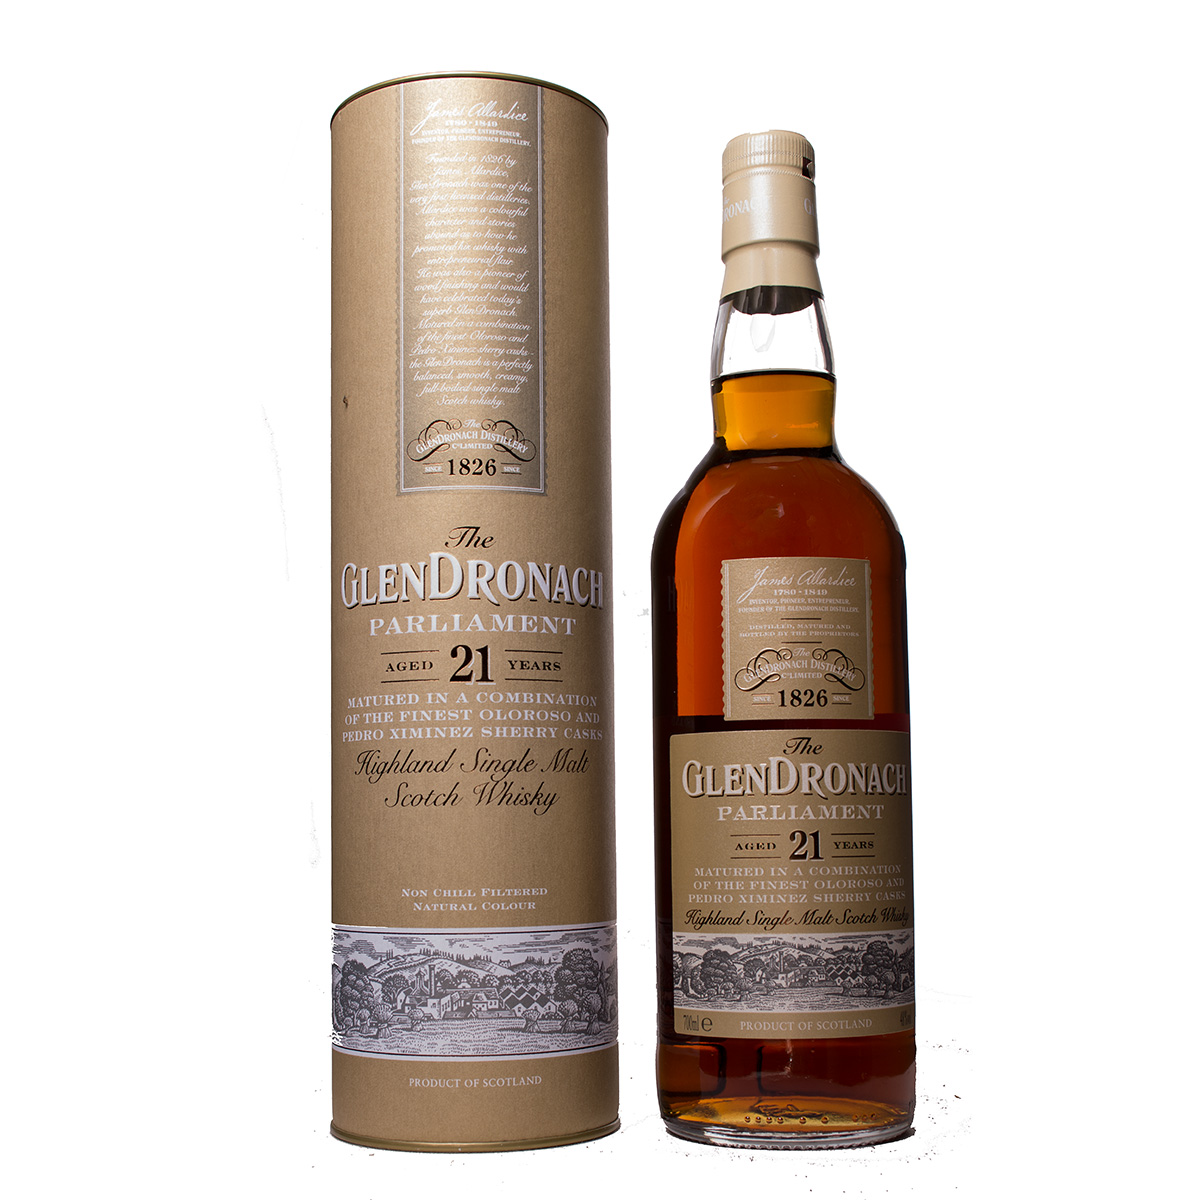 Glendronach Whisky Tour